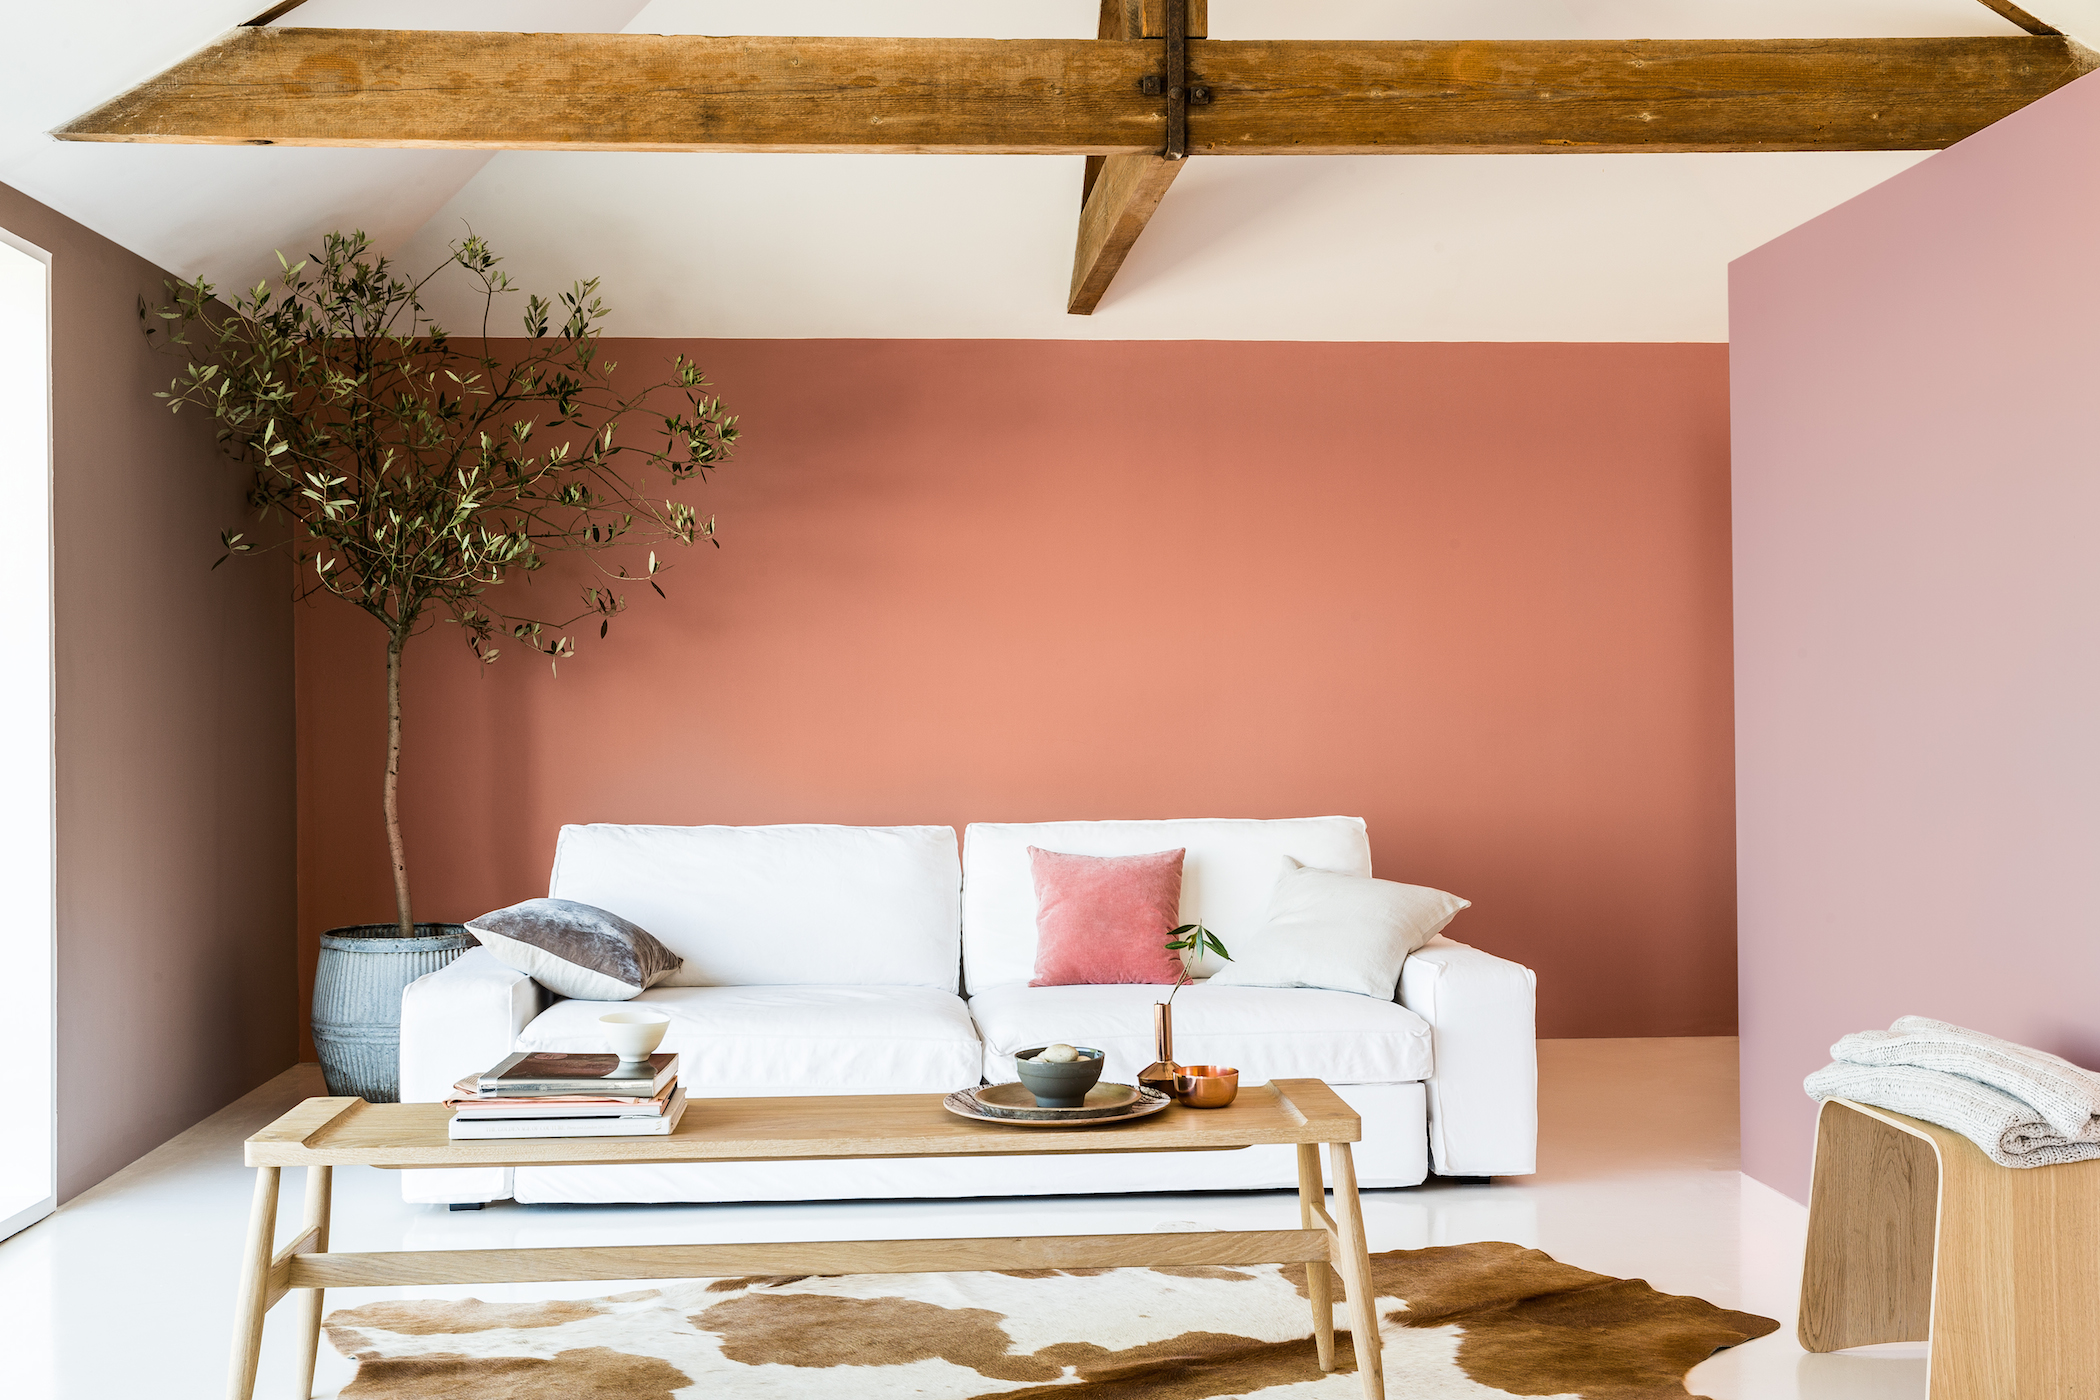 Dulux Trade Guide to Injecting Colour